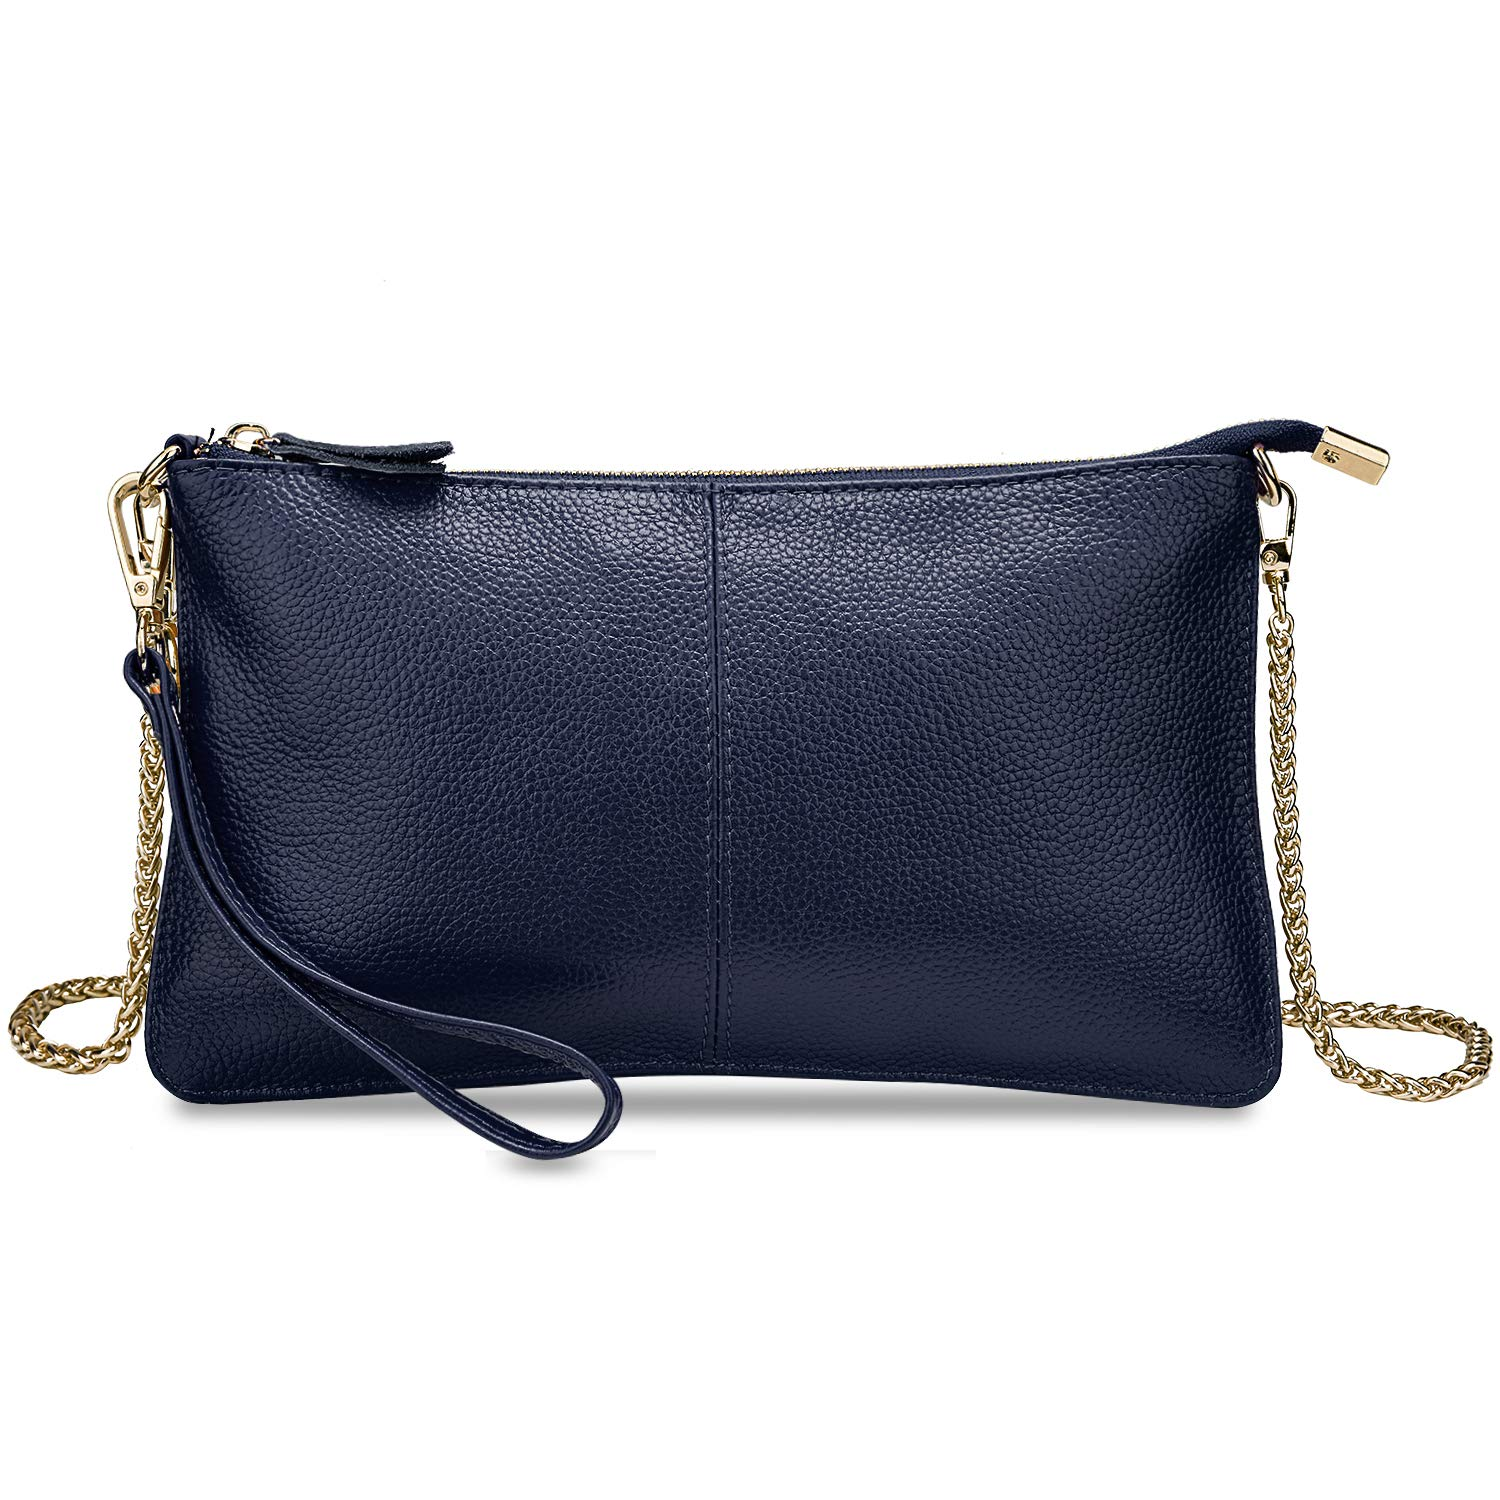 YALUXE Women's Real Leather Large Wristlet Phone Clutch Wallet with Shoulder Chain Blue by YALUXE